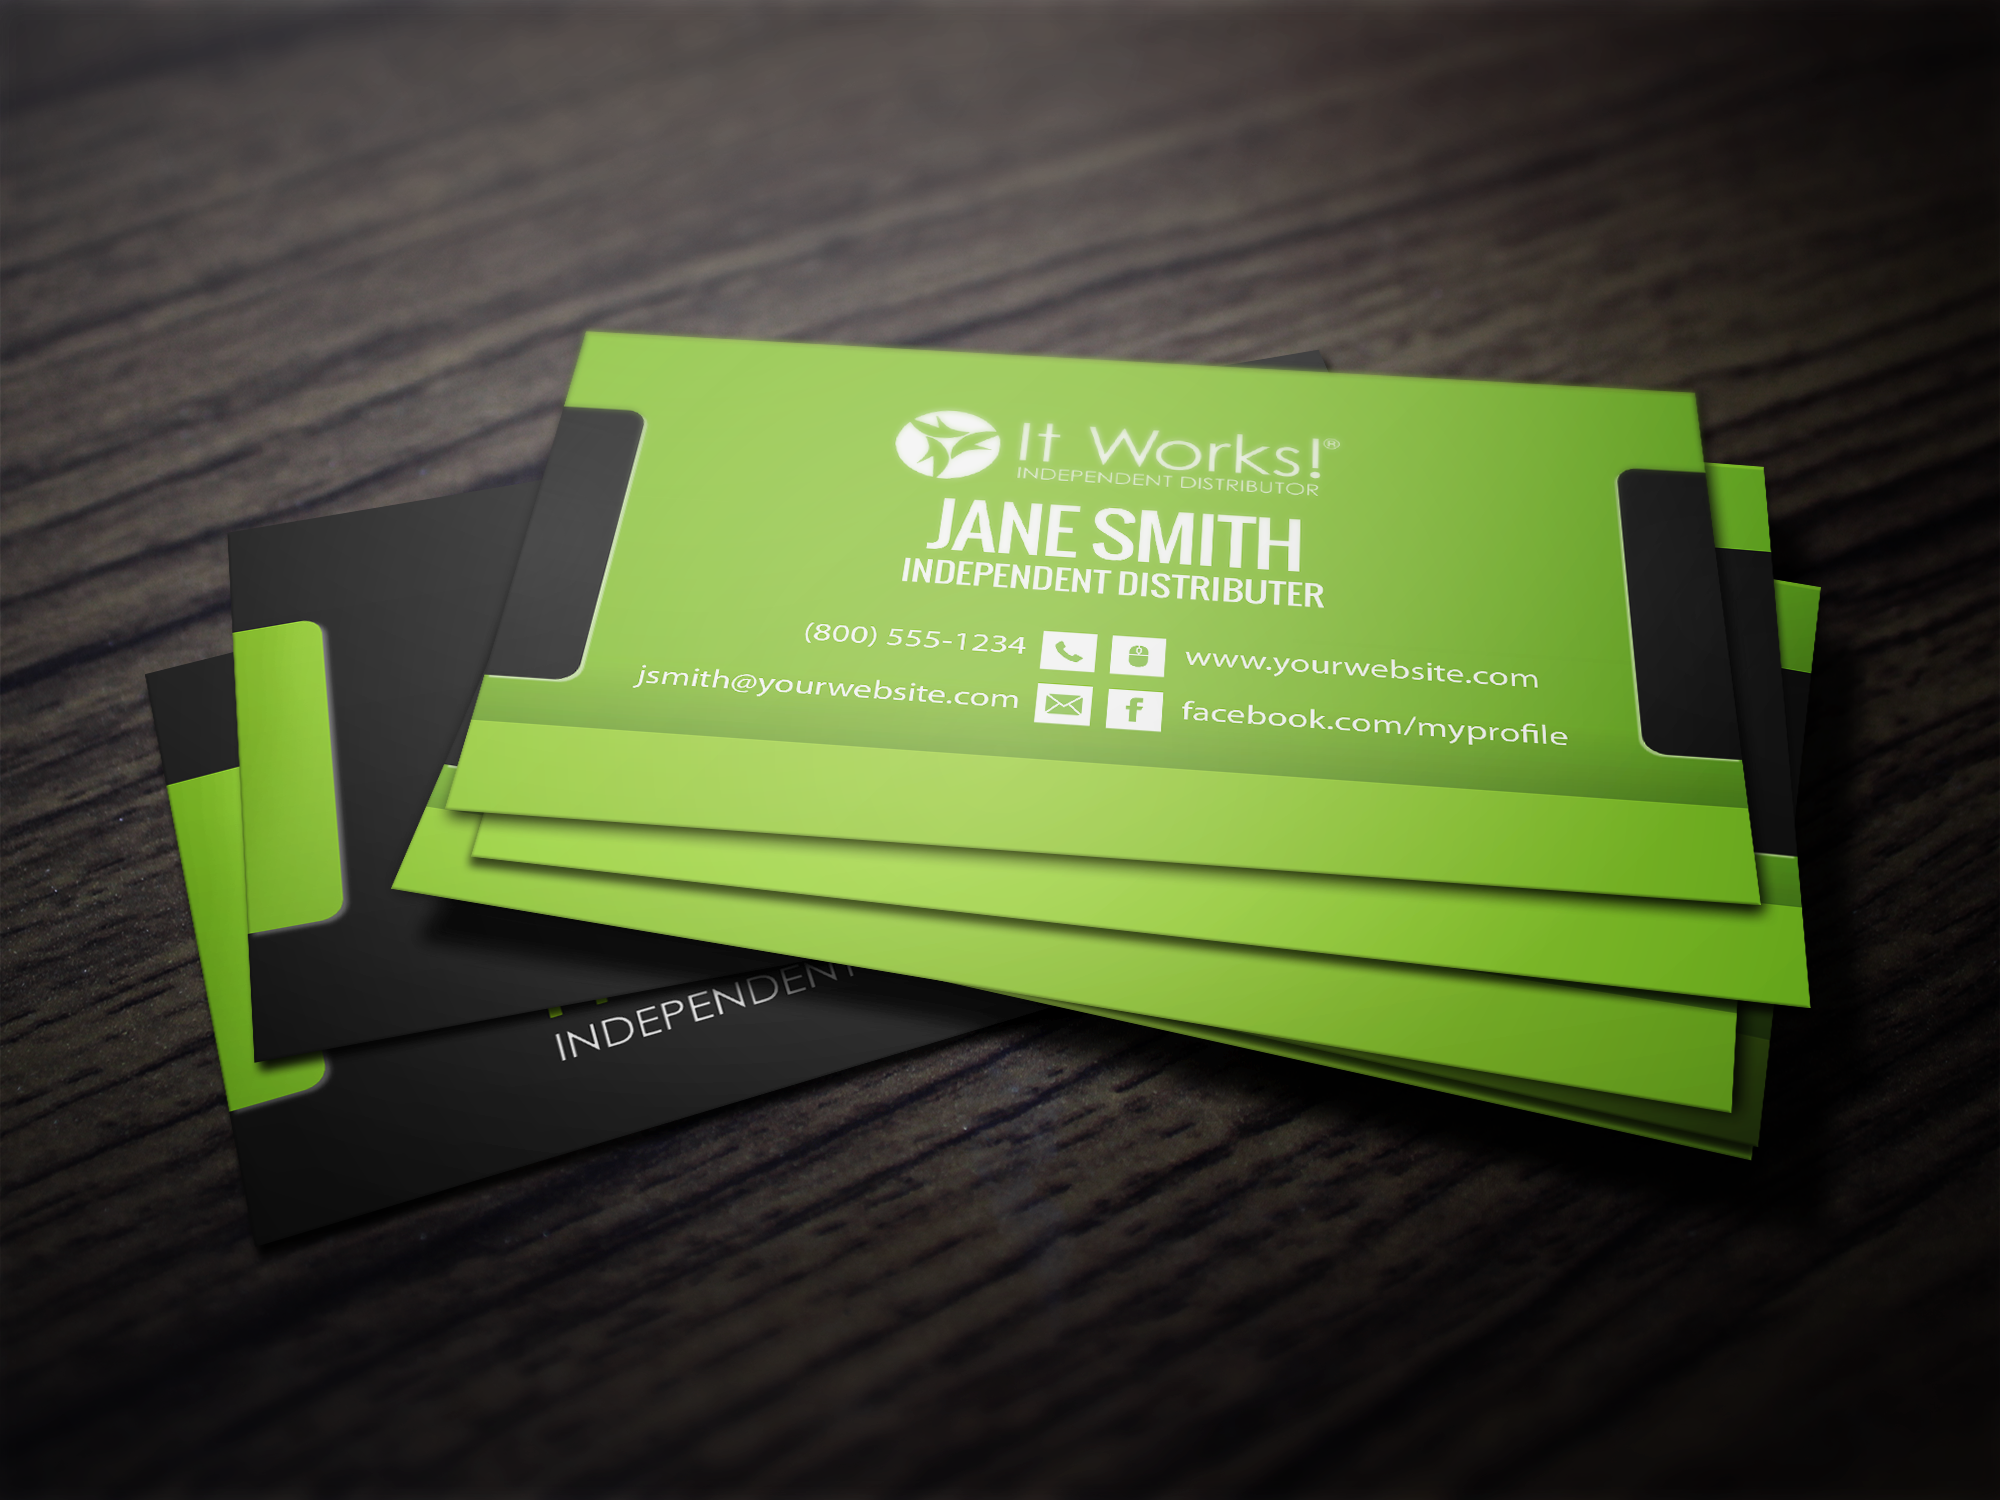 9 best it works business cards images on pinterest in 2018 - It Works Business Cards